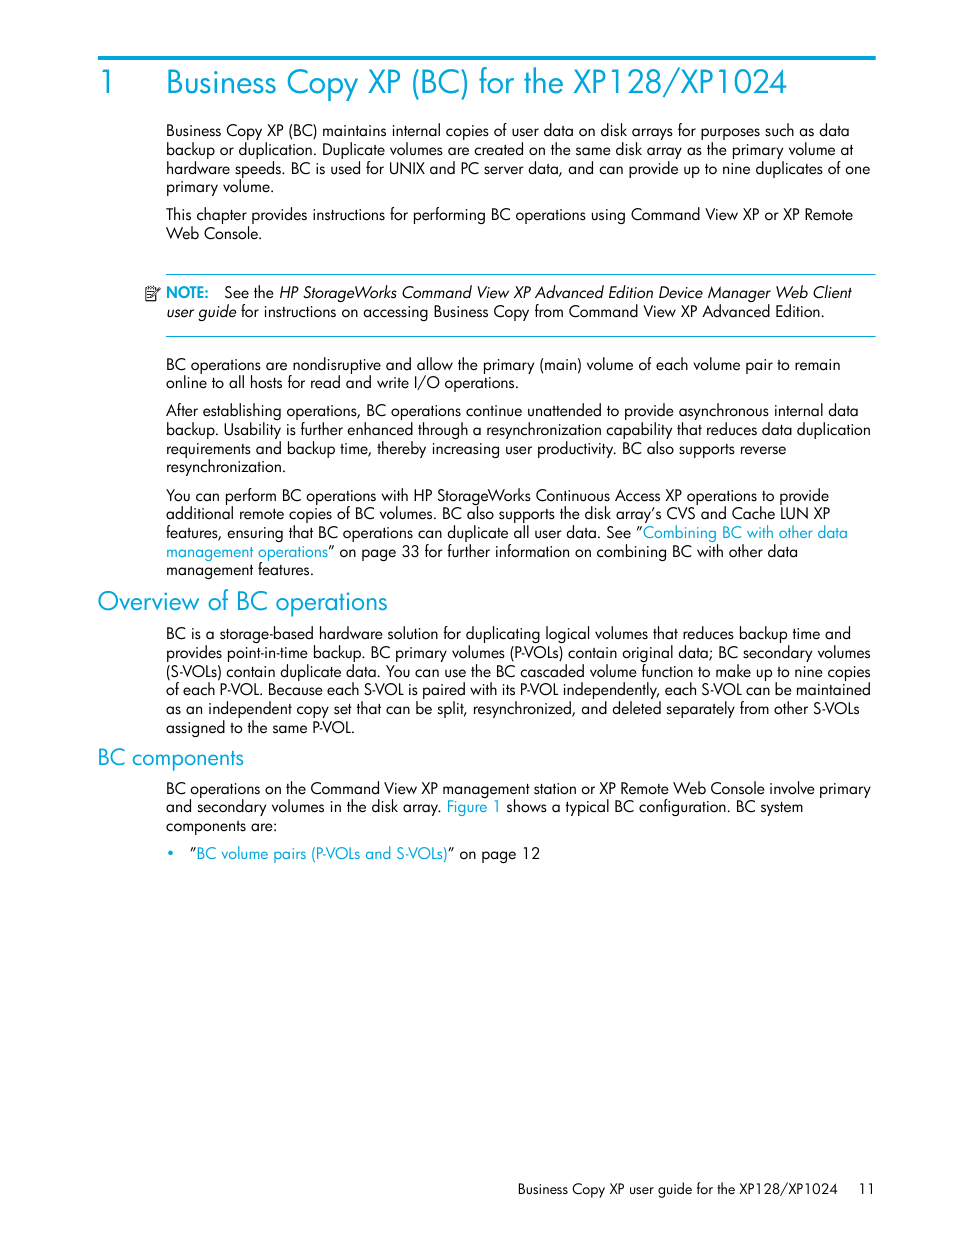 Business copy xp (bc) for the xp128/xp1024, Overview of bc operations